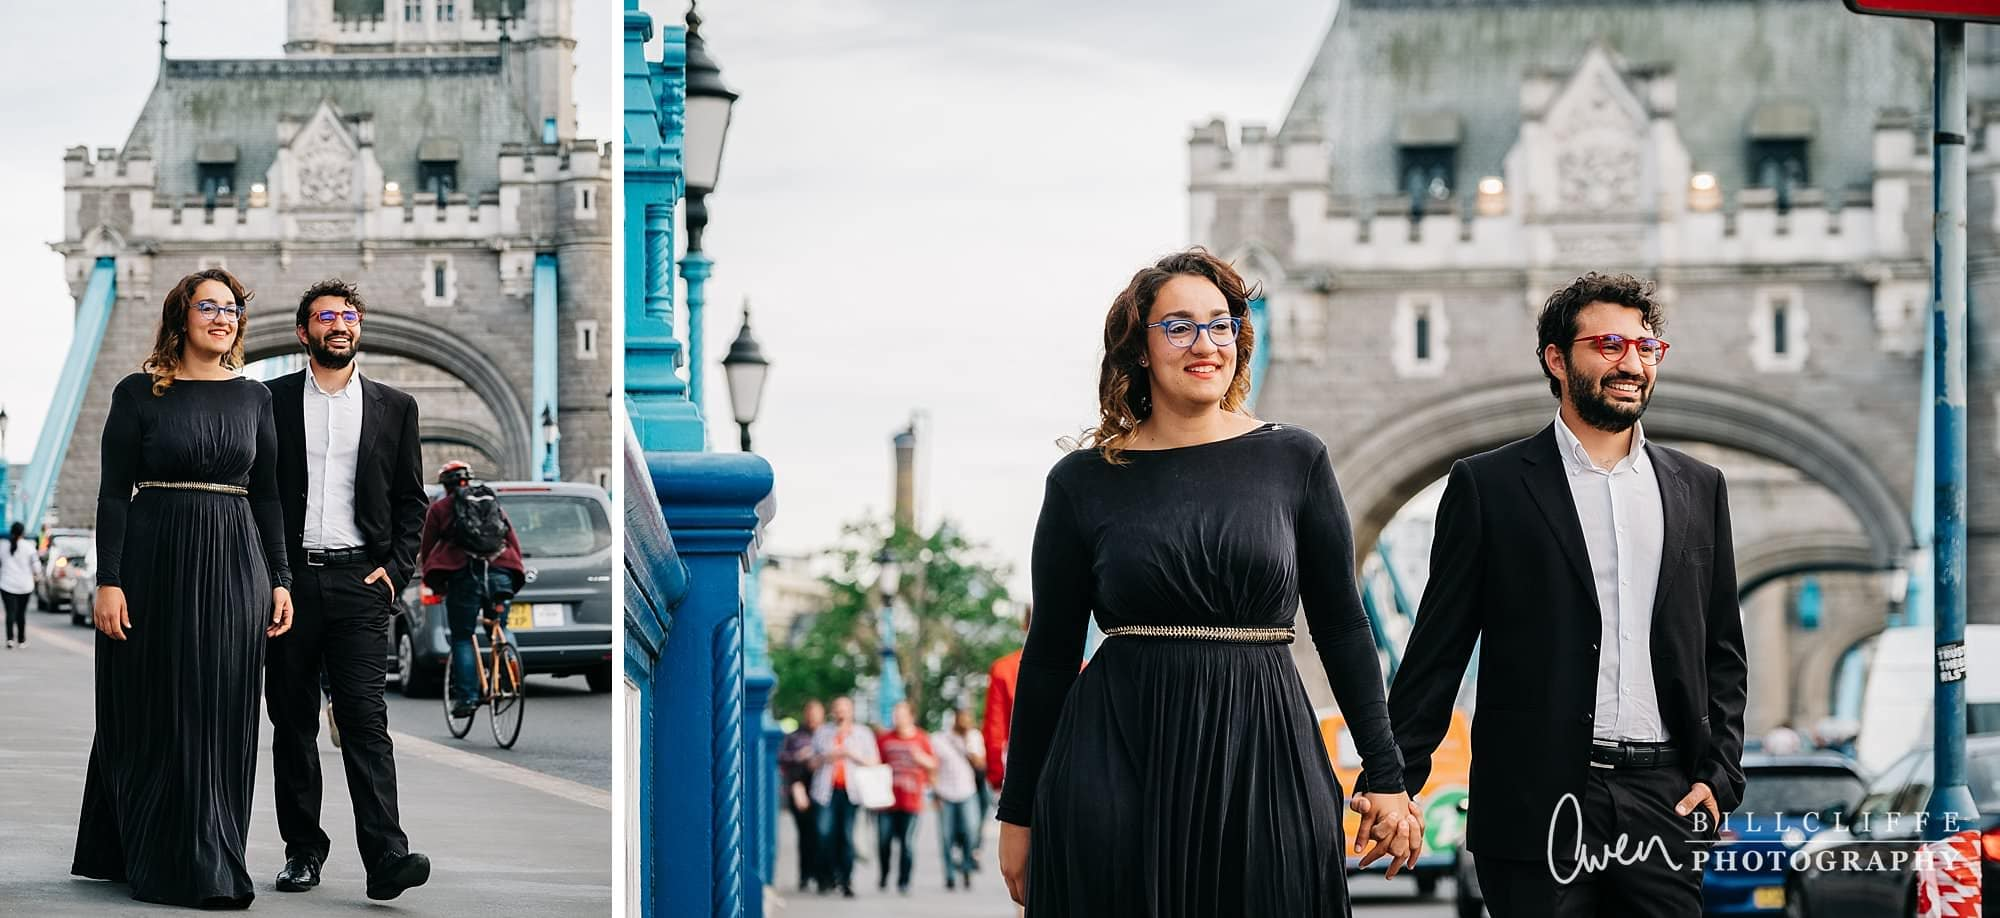 london engagement proposal photographer routemaster gr 008 - A Romantic Marriage Proposal on a London Routemaster Bus